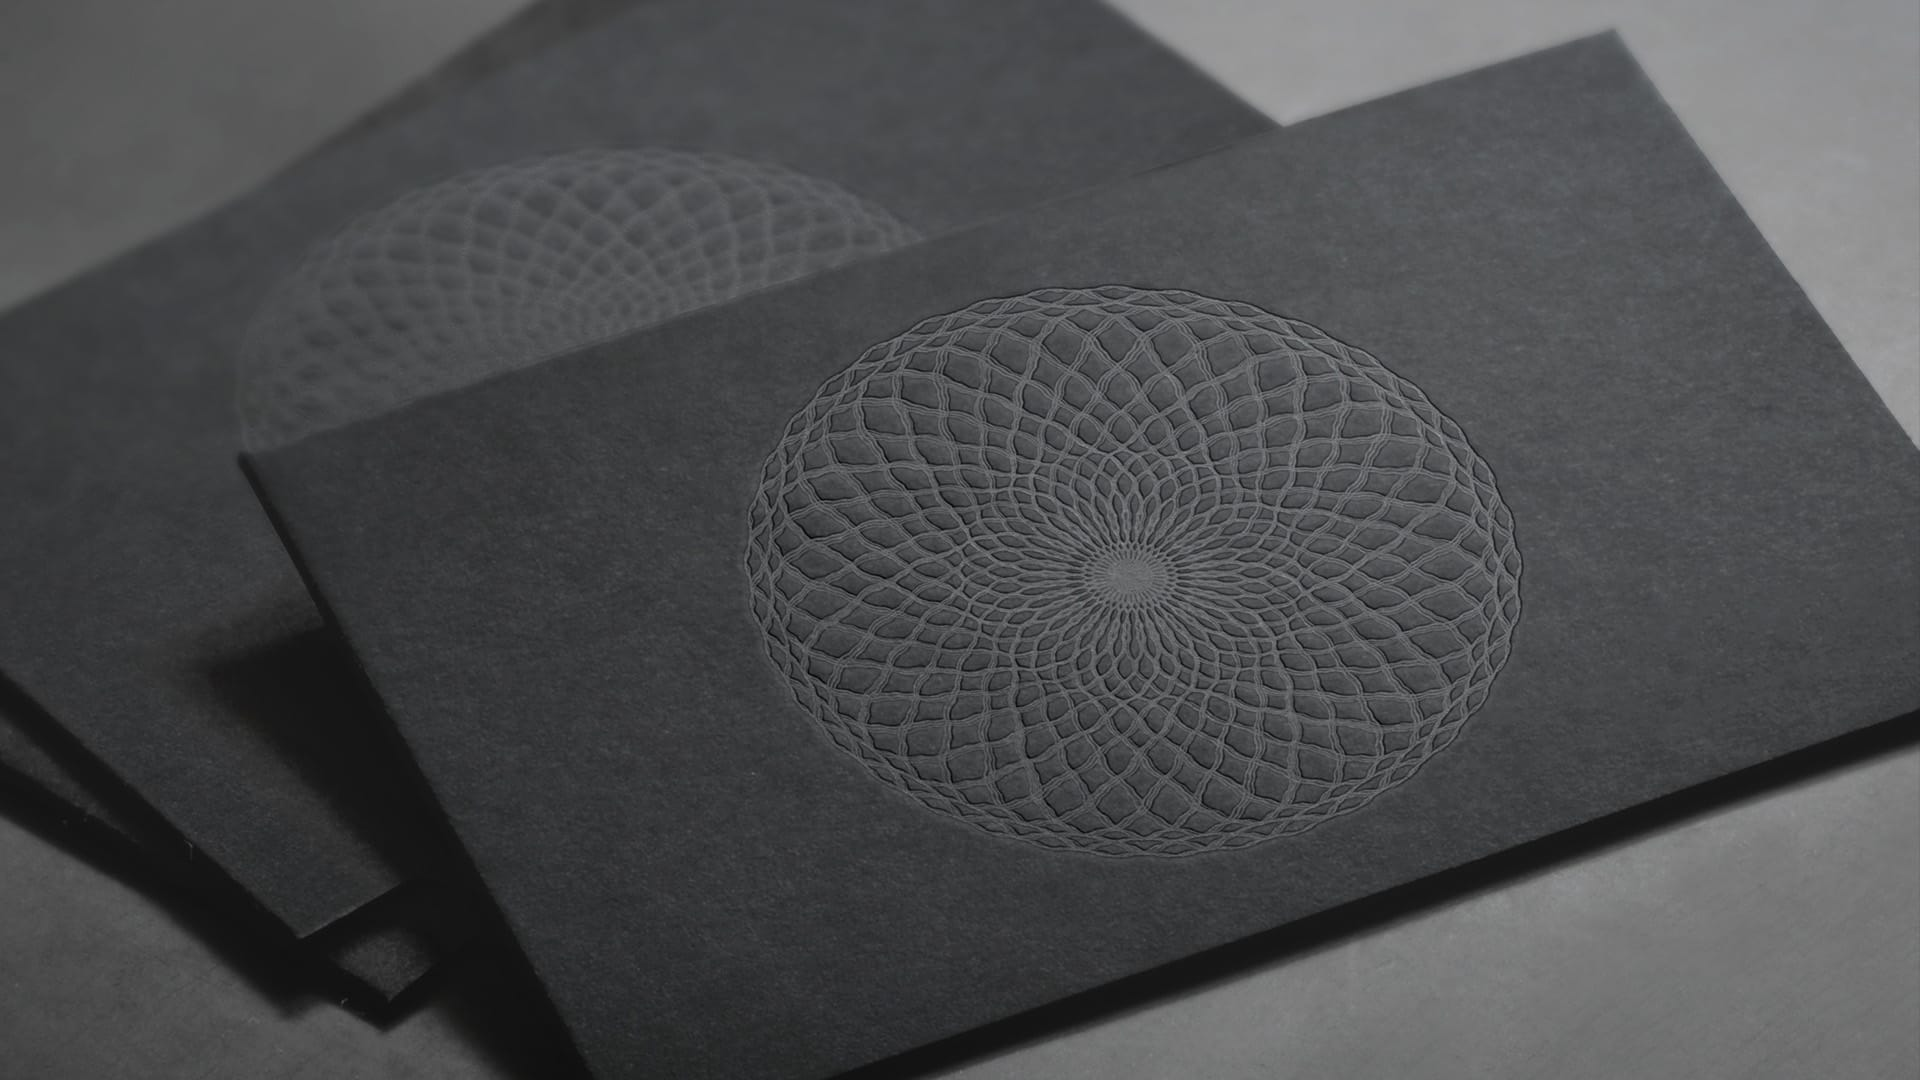 Black-Embossed-Logos-Serjan_Burlak_BiogenicDesign-3